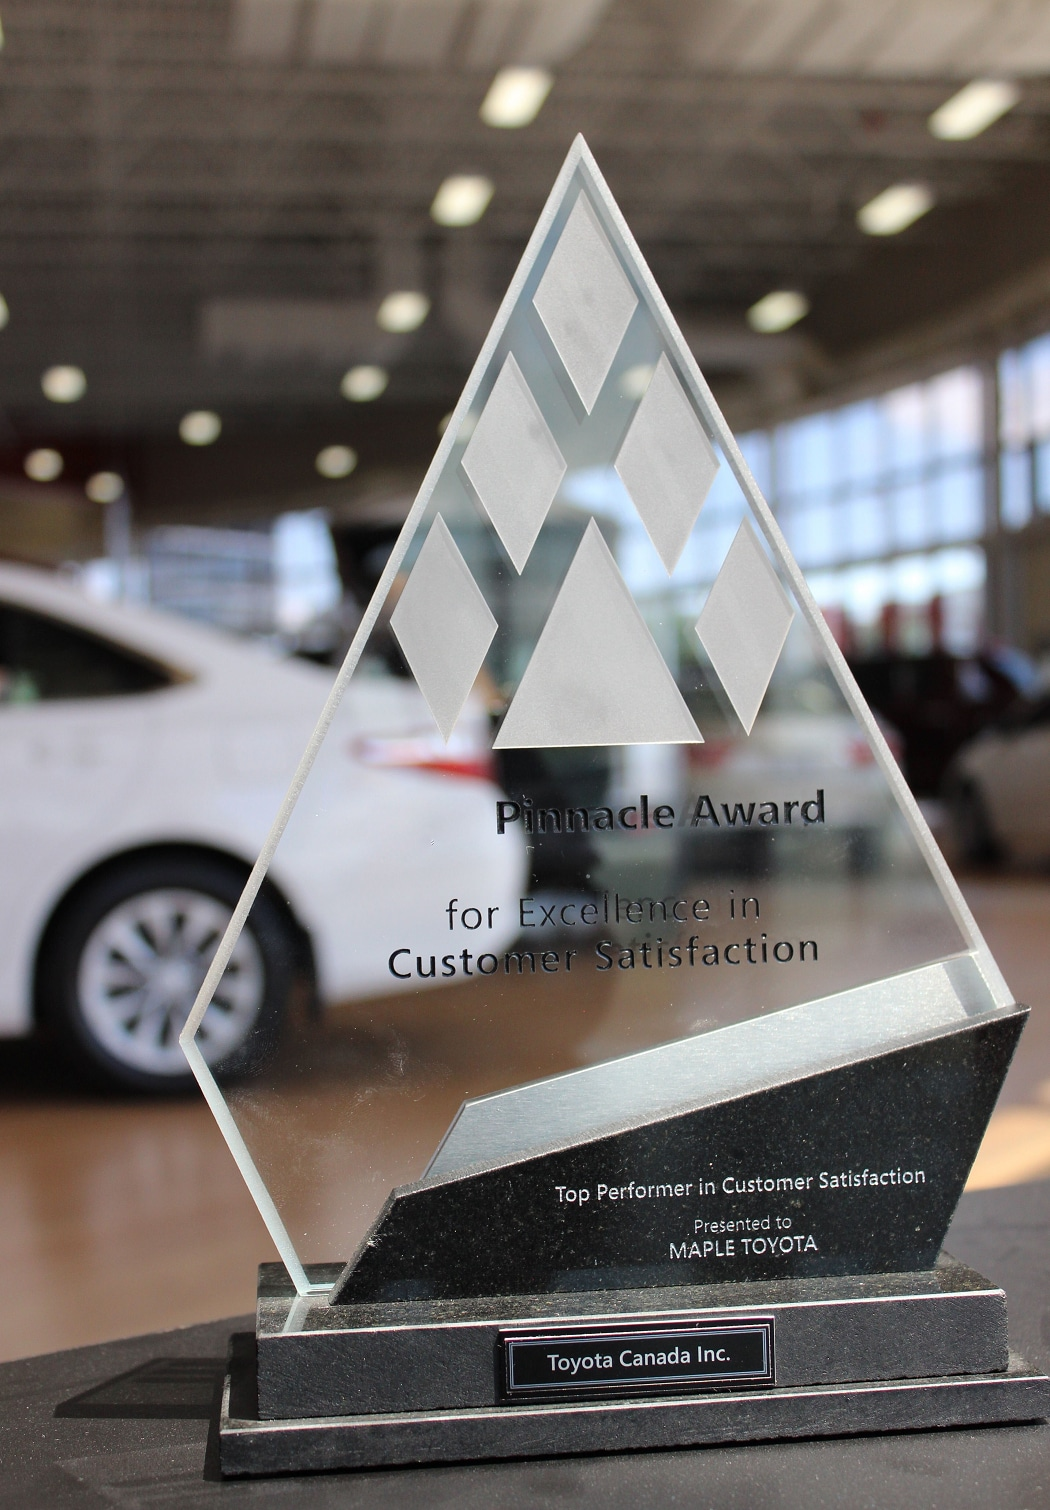 Top Performer in Customer Satisfaction - Toyota Pinnacle Award